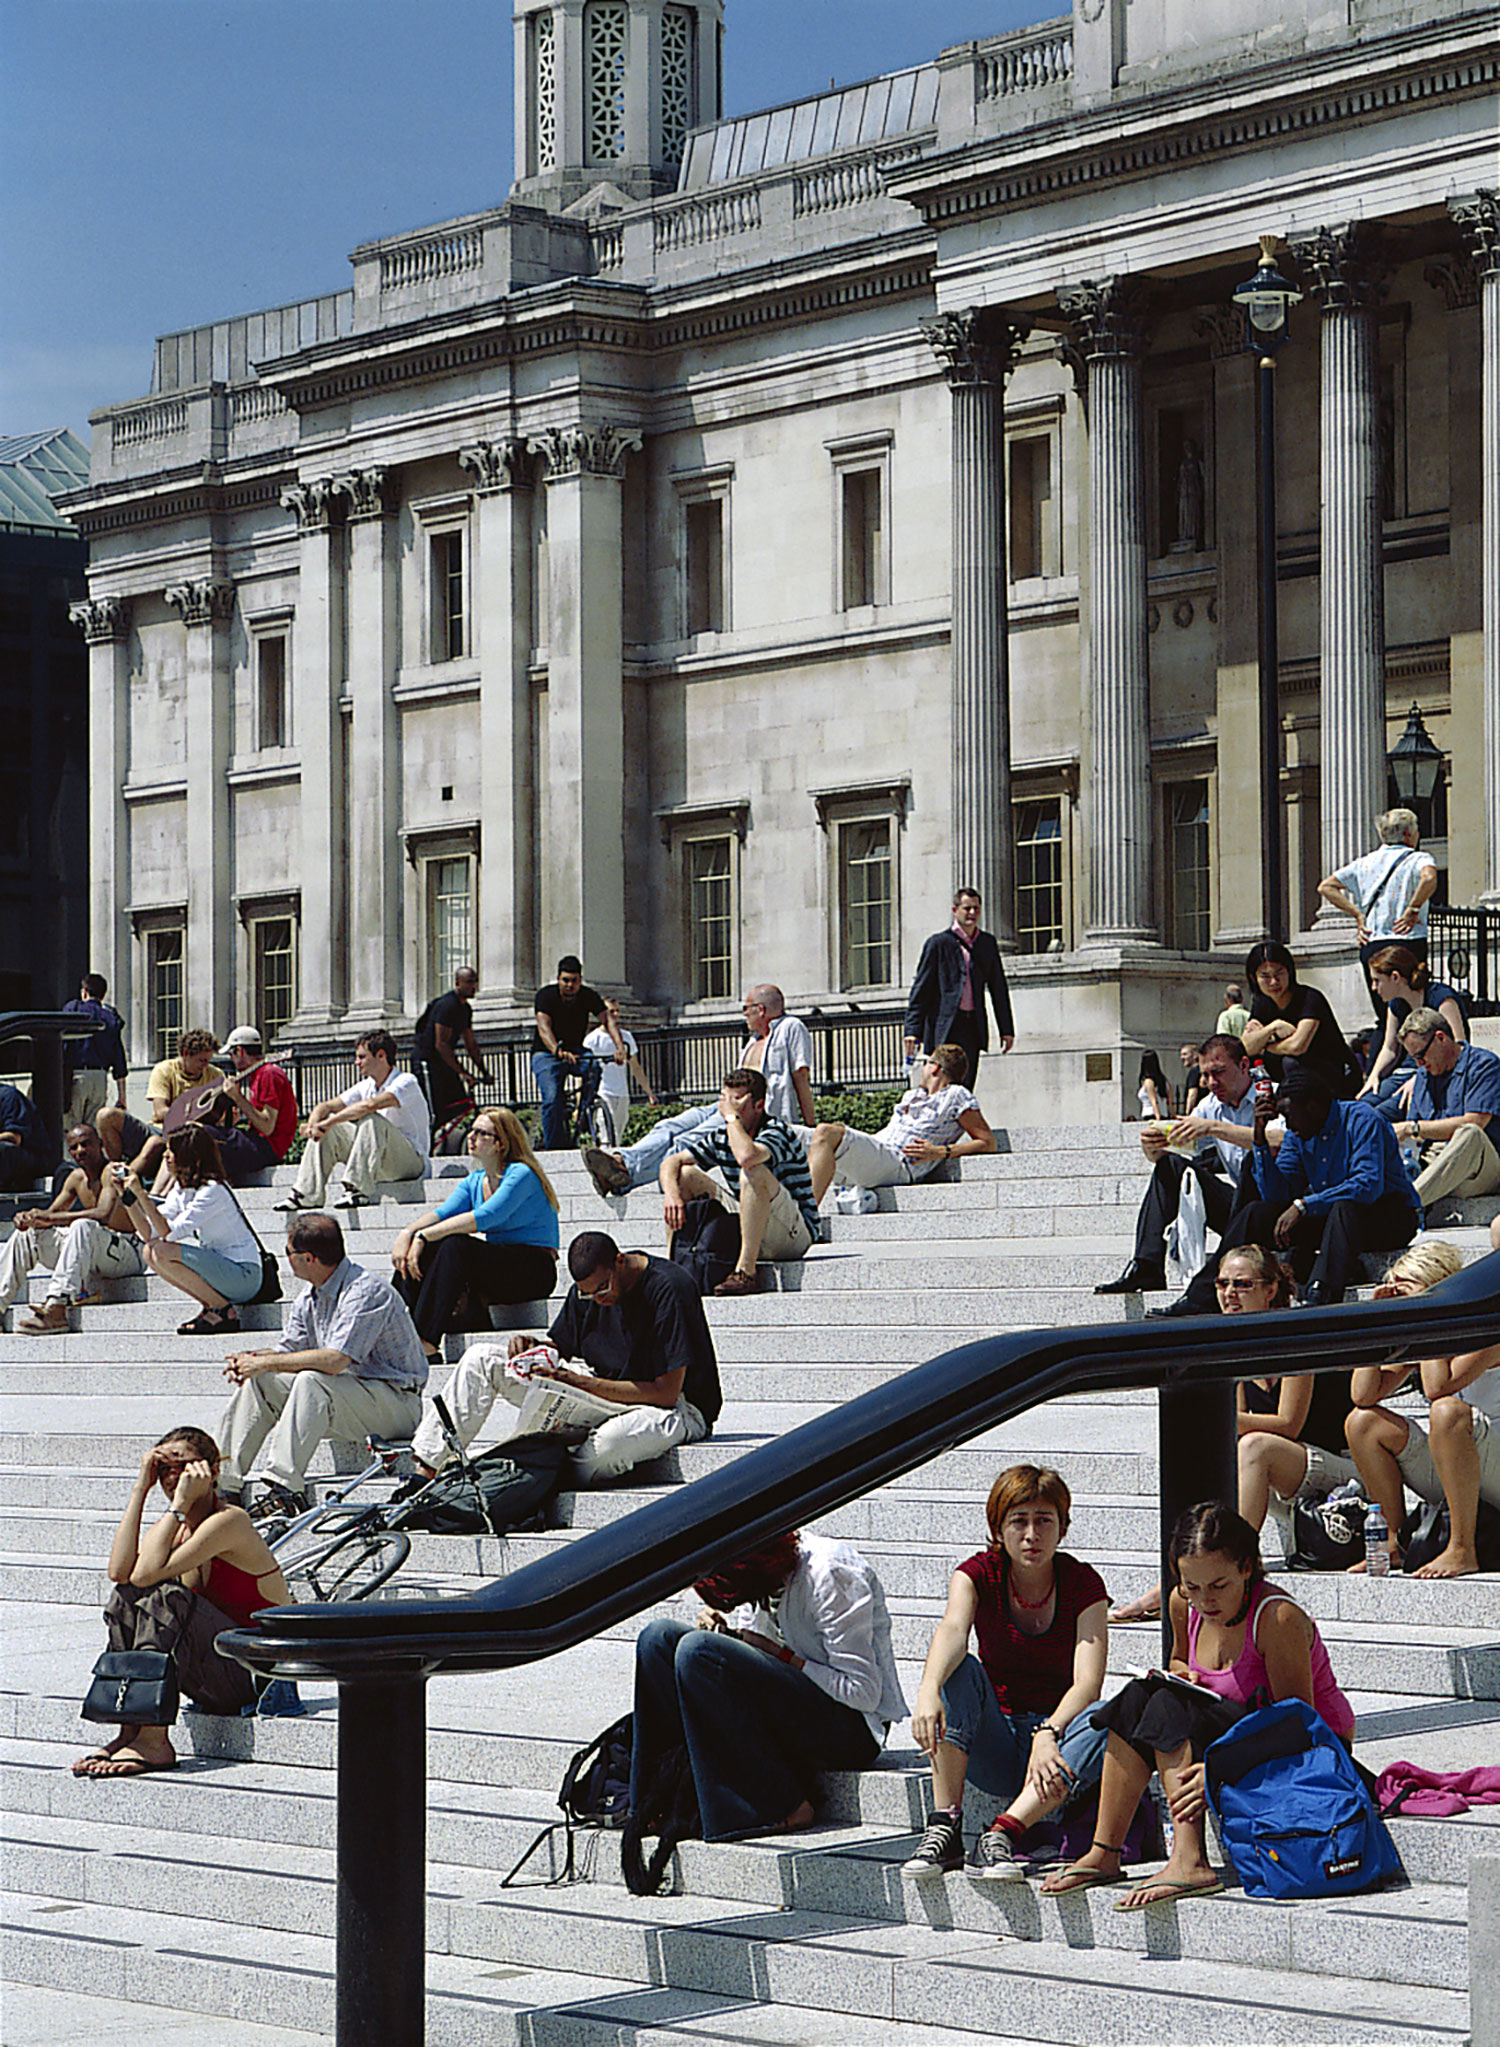 Squares to the National Gallery are today a meeting and resting place for many. Credit Nigel Young, Foster + Partners